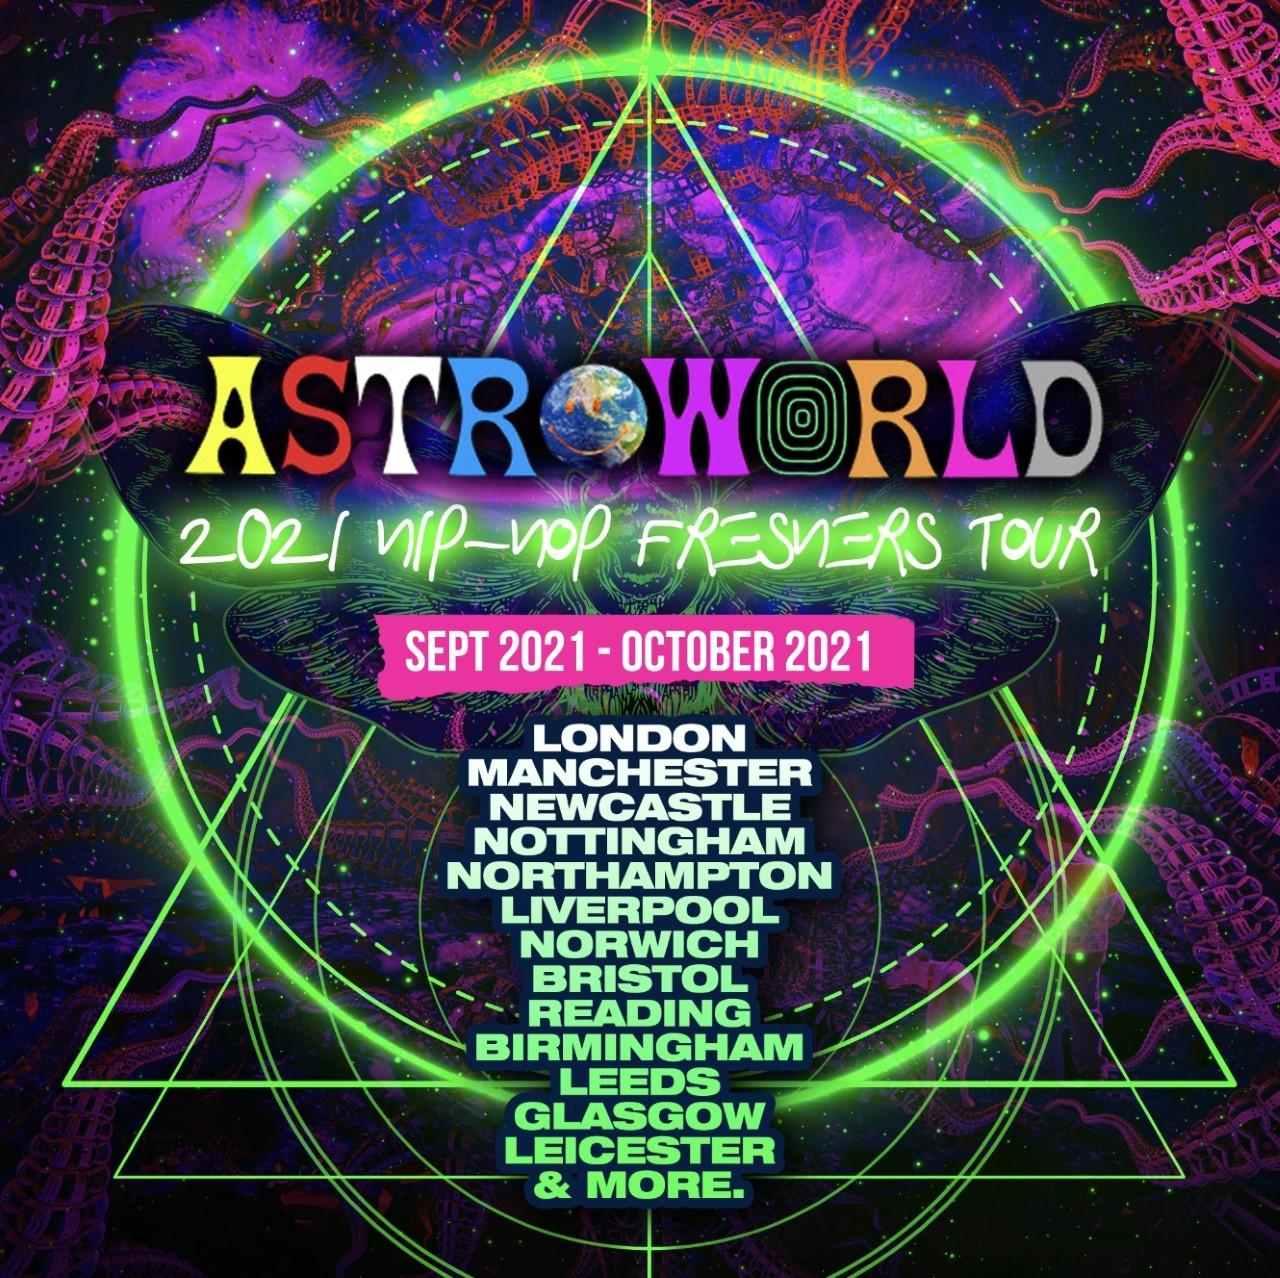 ASTROWORLD - 2021 Hip-Hop Freshers Tour (Package)